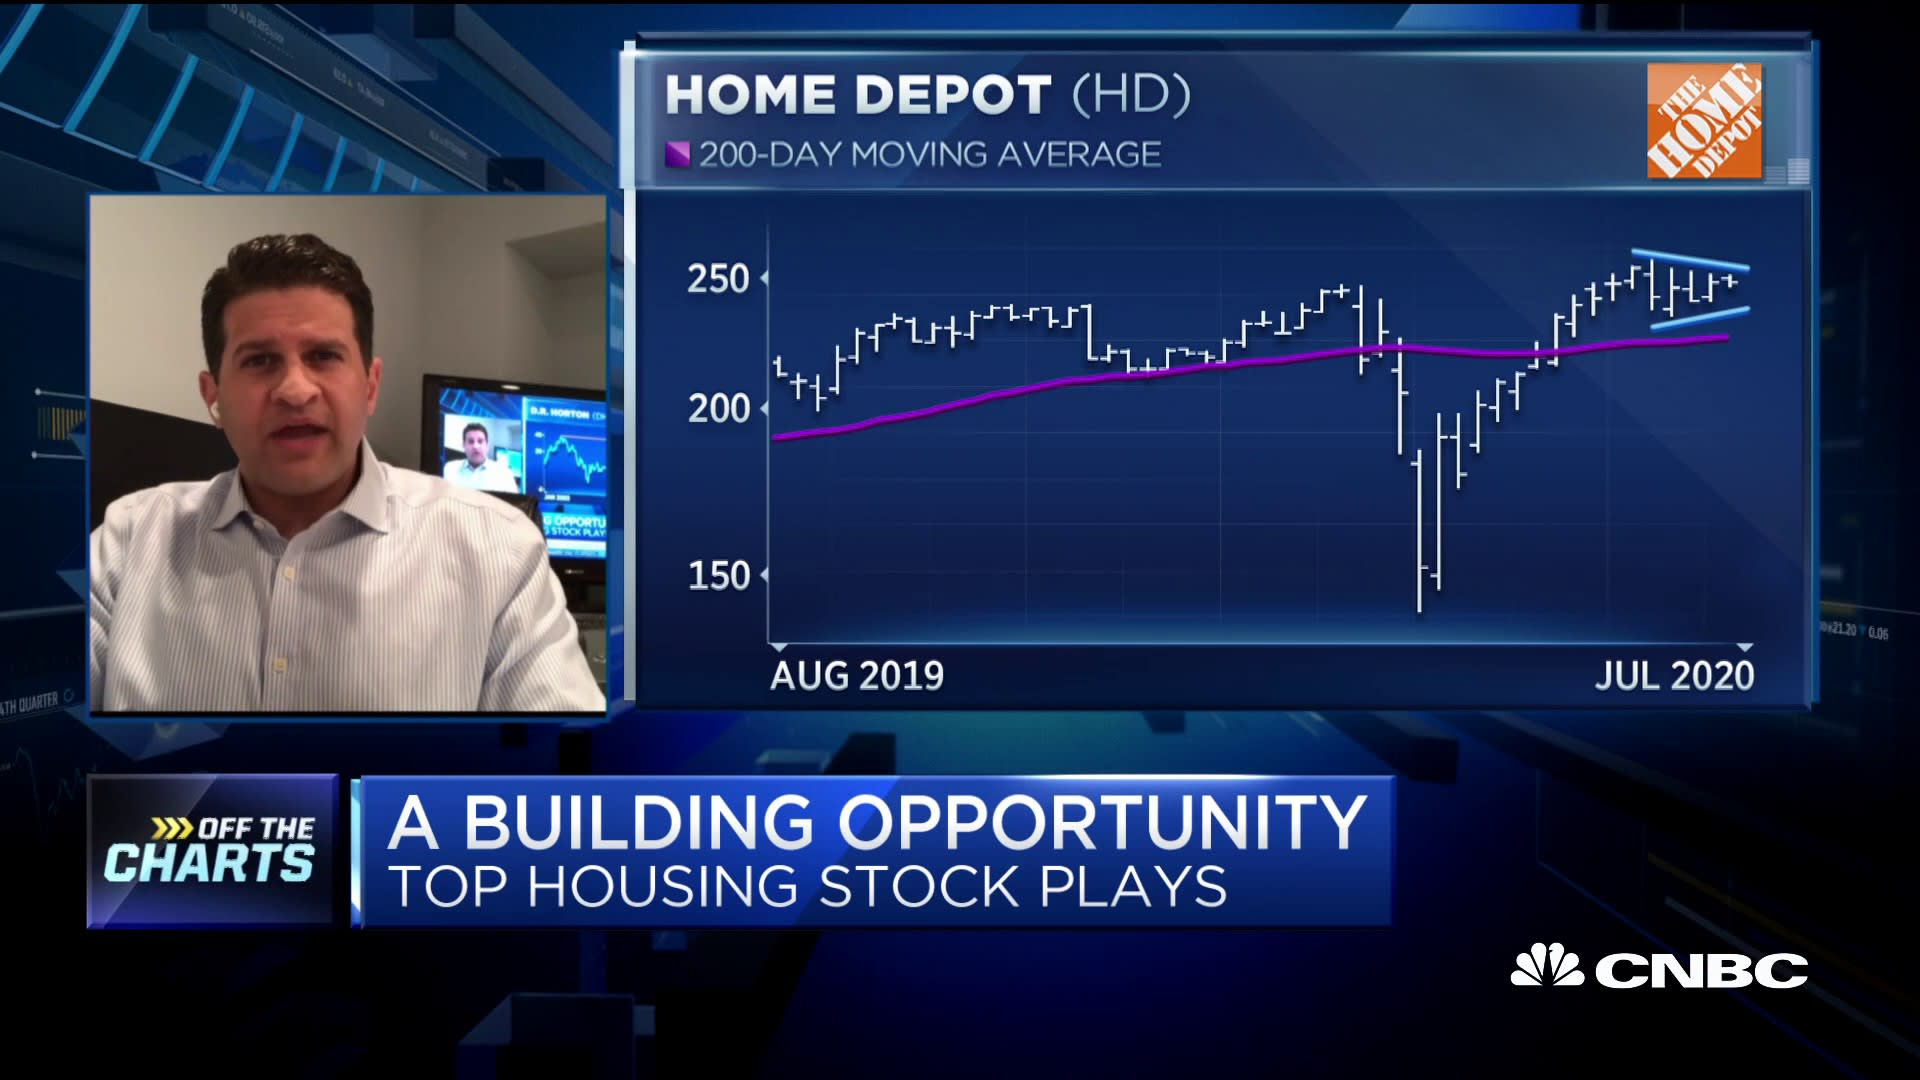 Two stocks could be the best play to ride housing boom, says Oppenheimer's Ari Wald